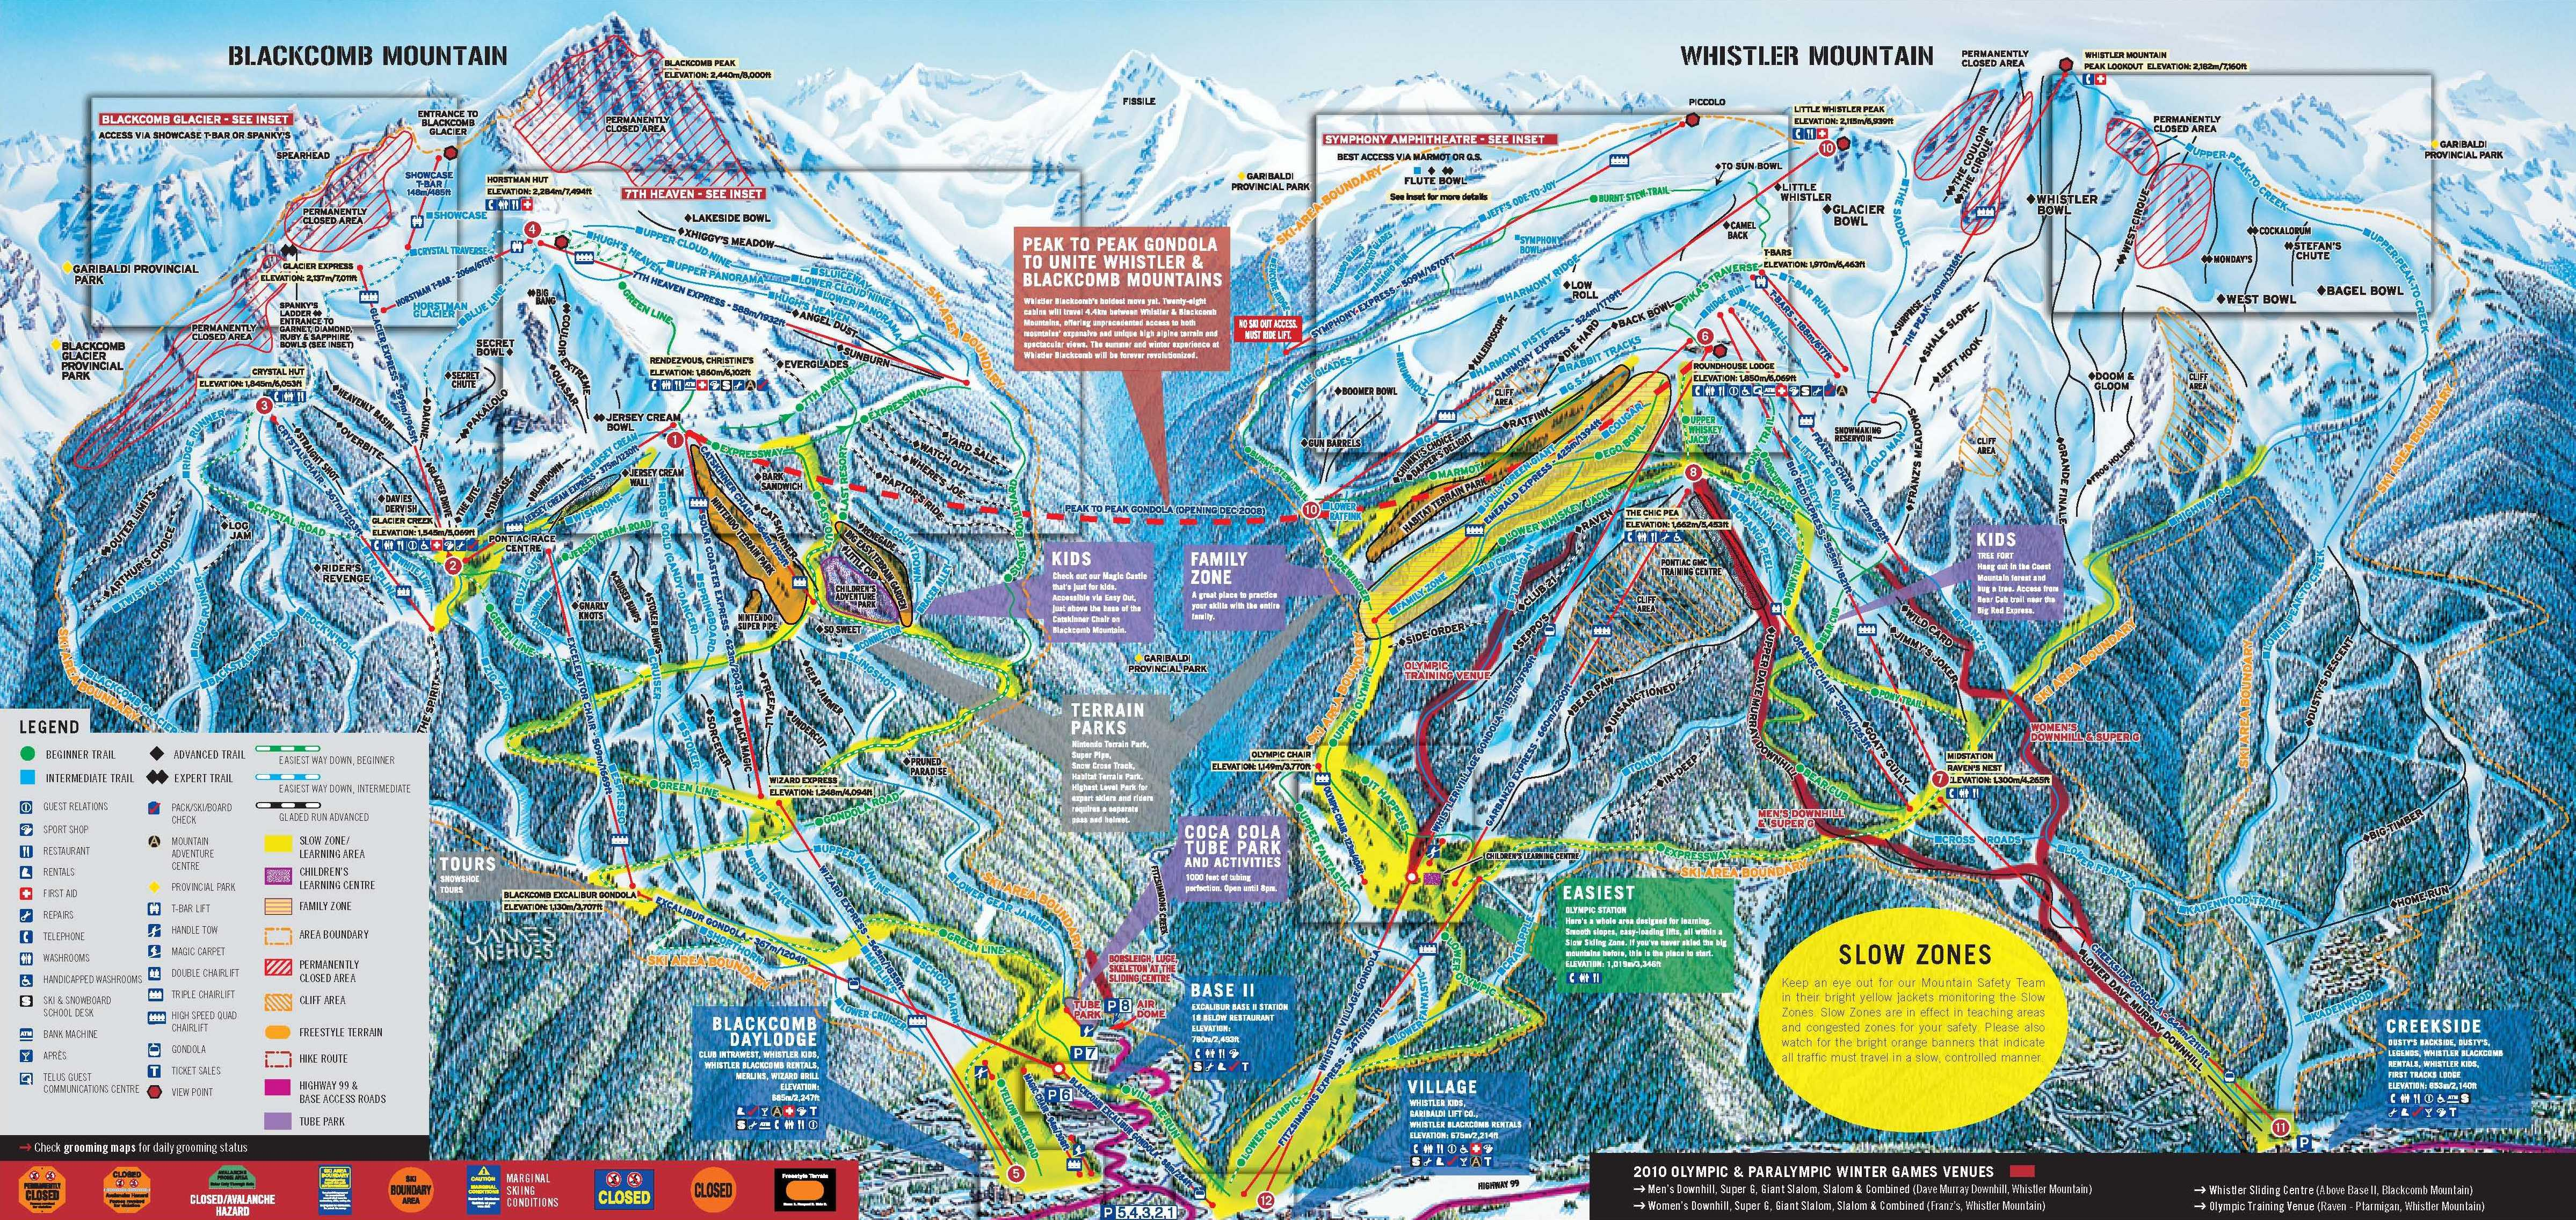 whistler blackcomb map with Pistenplan Whistler Gross on Whistler moreover Locationphotodirectlink G154948 D489755 I16945057 Whistler mountain bike park Whistler british columbia together with Saas Fee Piste Map likewise Whistler Transit Bus Routes Visitors Village in addition Whistler stoney lagoons ac modations.